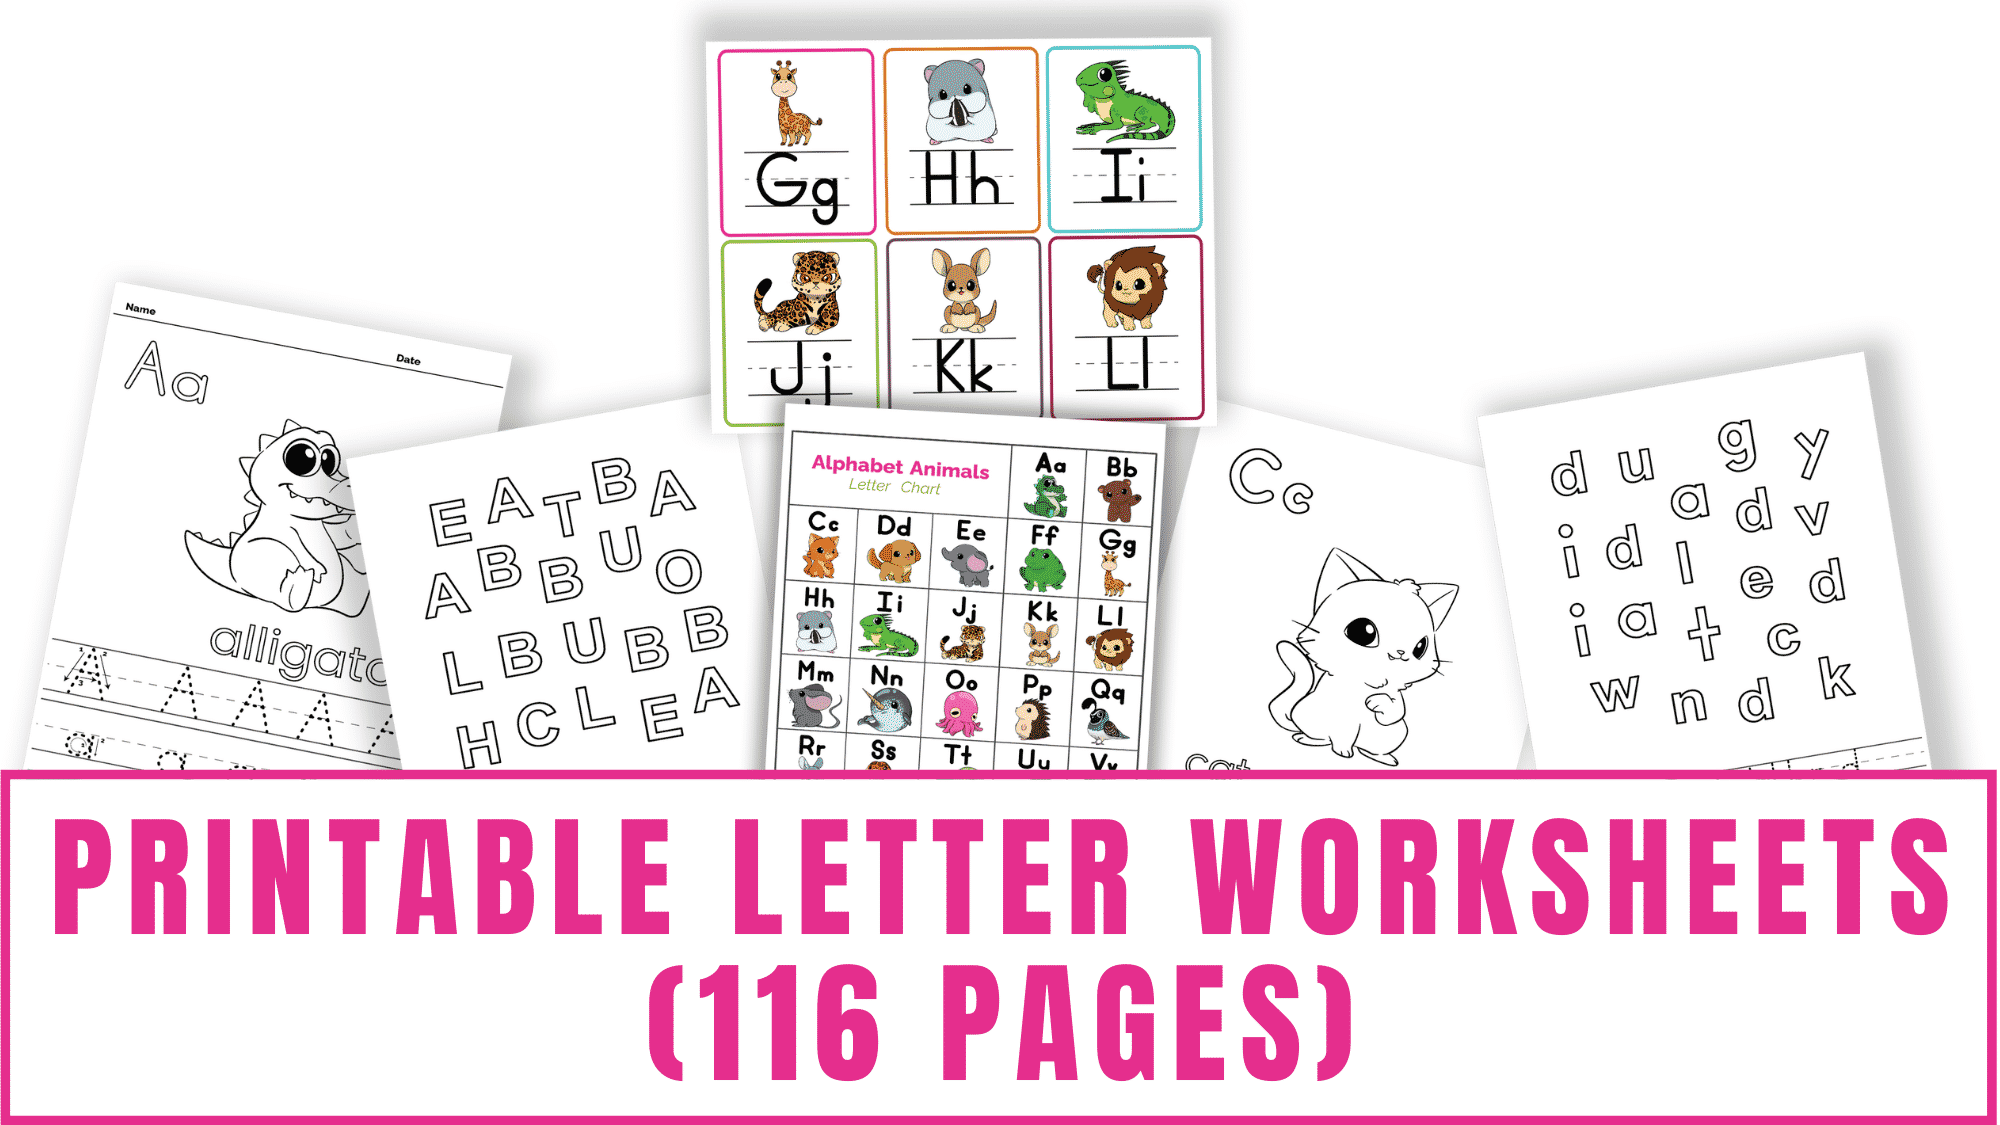 In this bundle of printable letter worksheets you will find kindergarten and preschool letter recognition worksheets, letter tracing worksheets, an ABC chart printable for kids, printable letter flashcards, and words that start with worksheets.